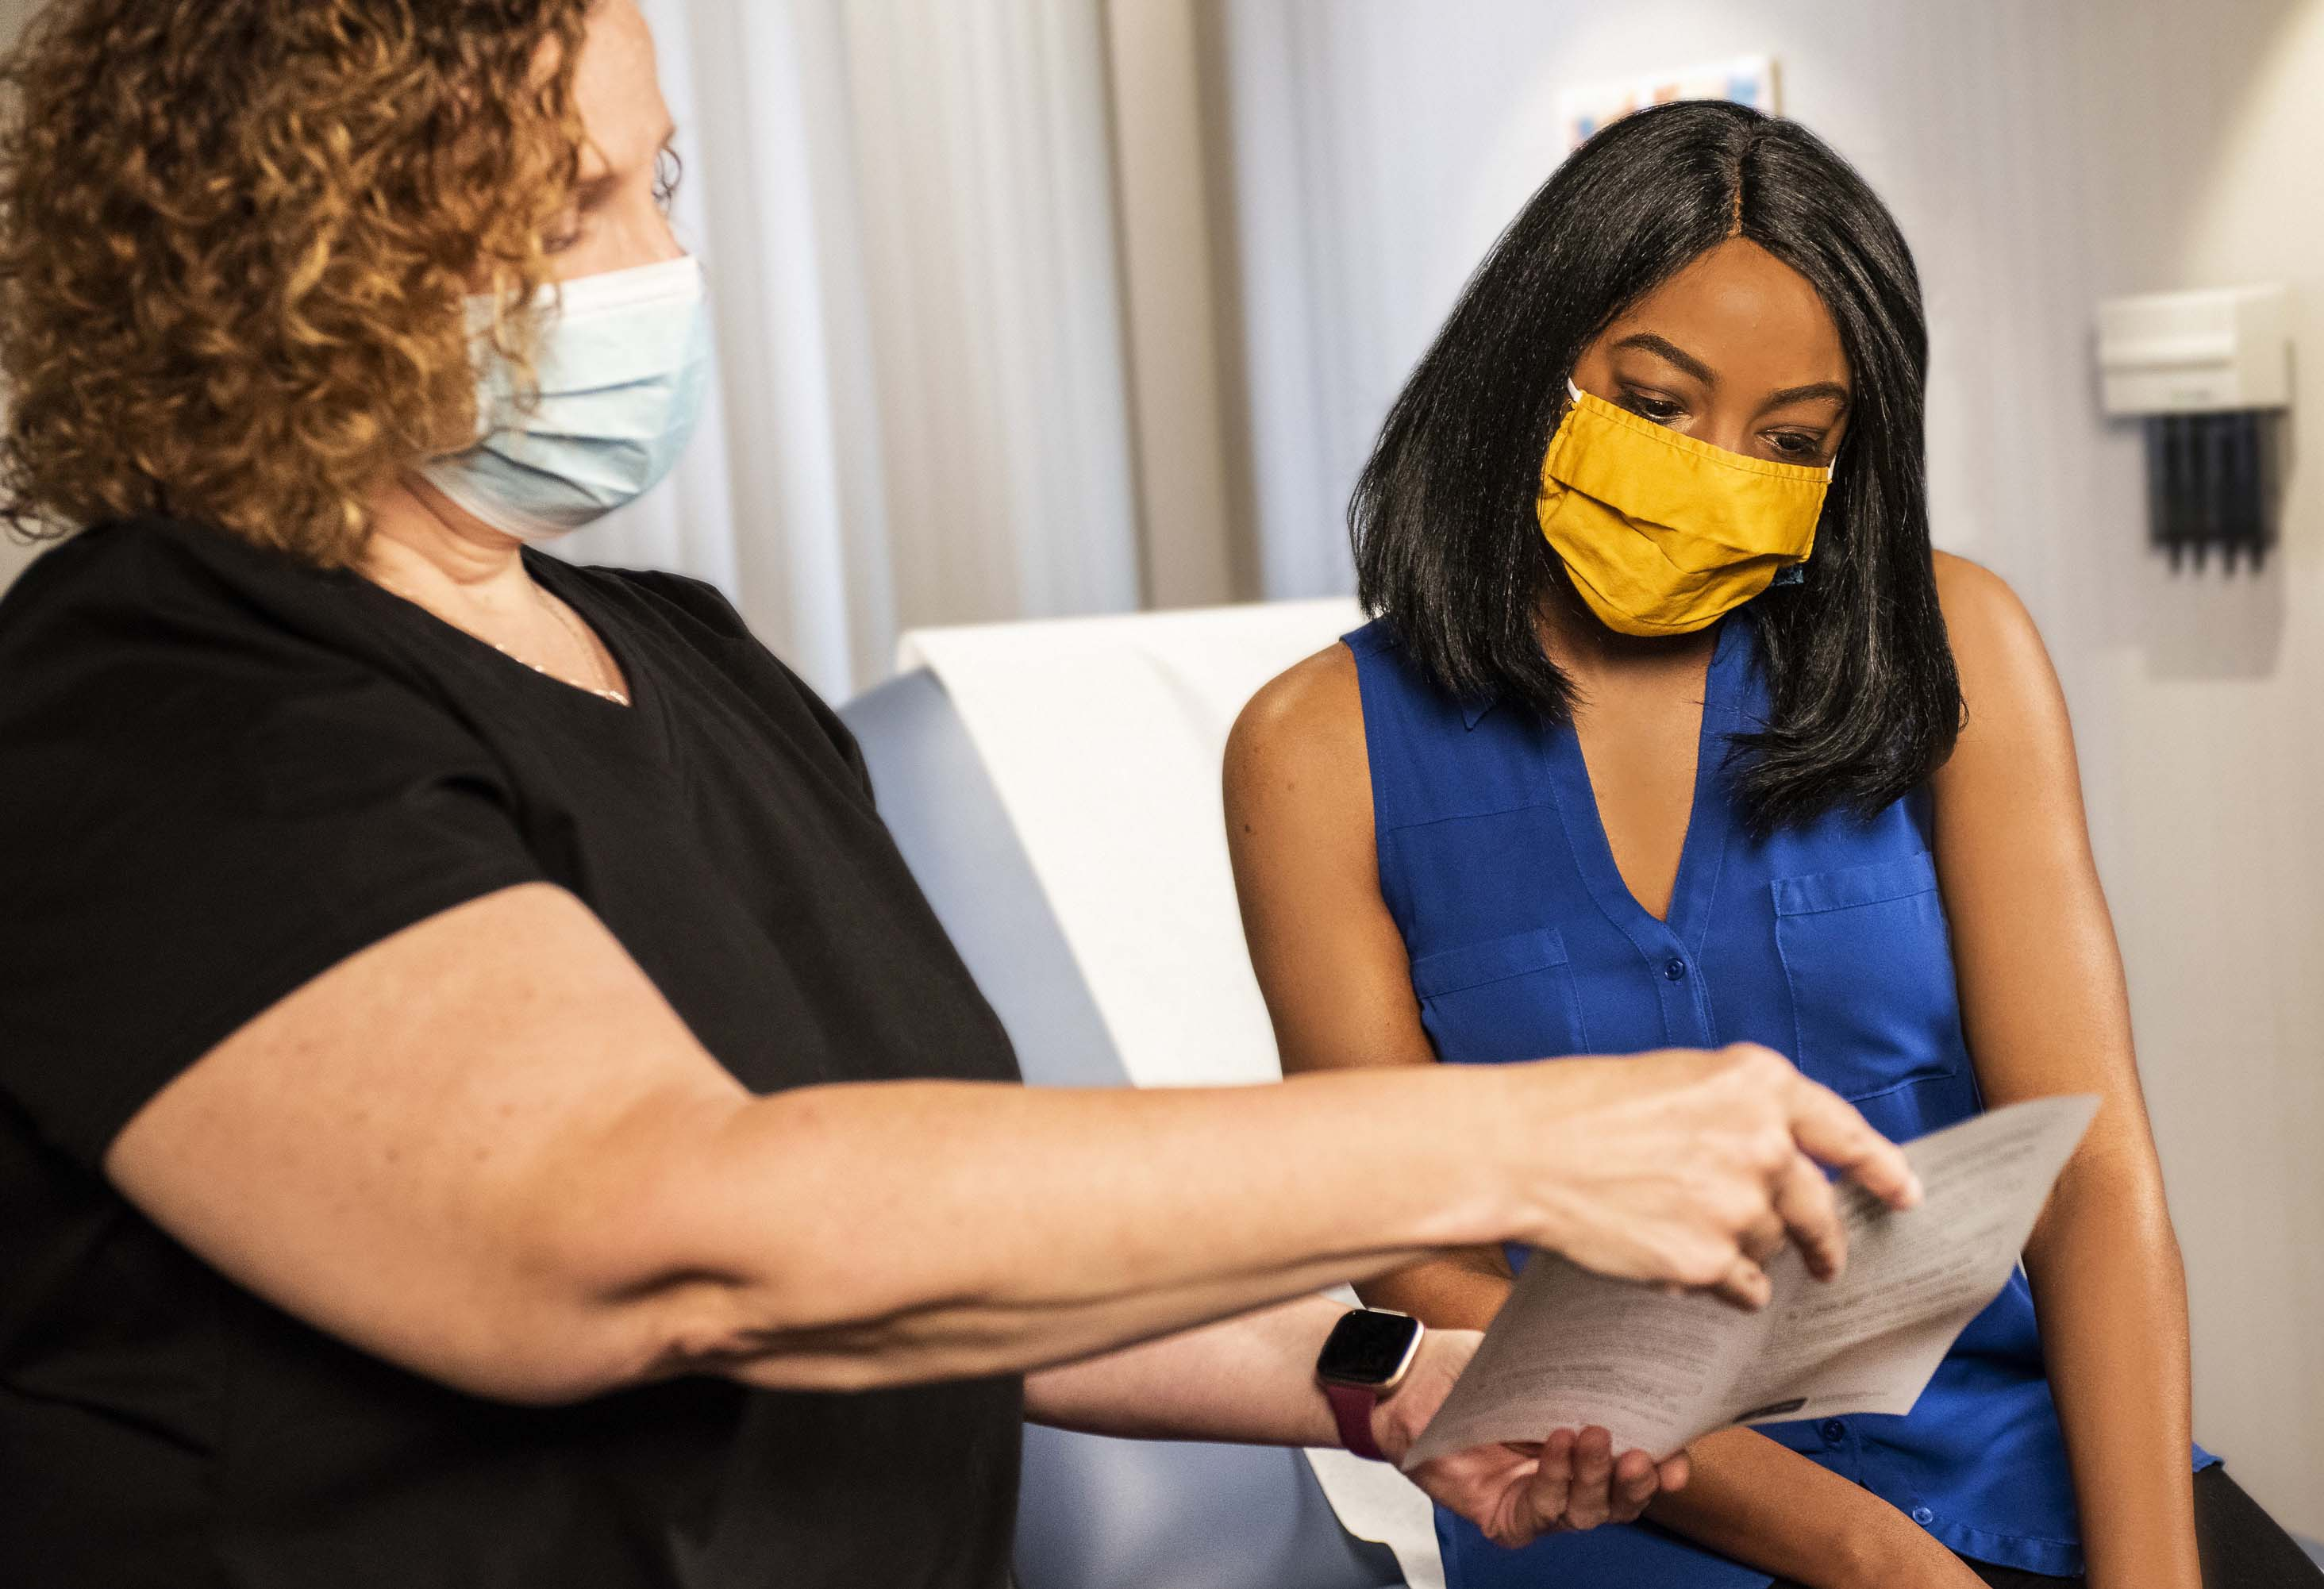 A medical professional shows a patient some printed-out information in a consulting room.